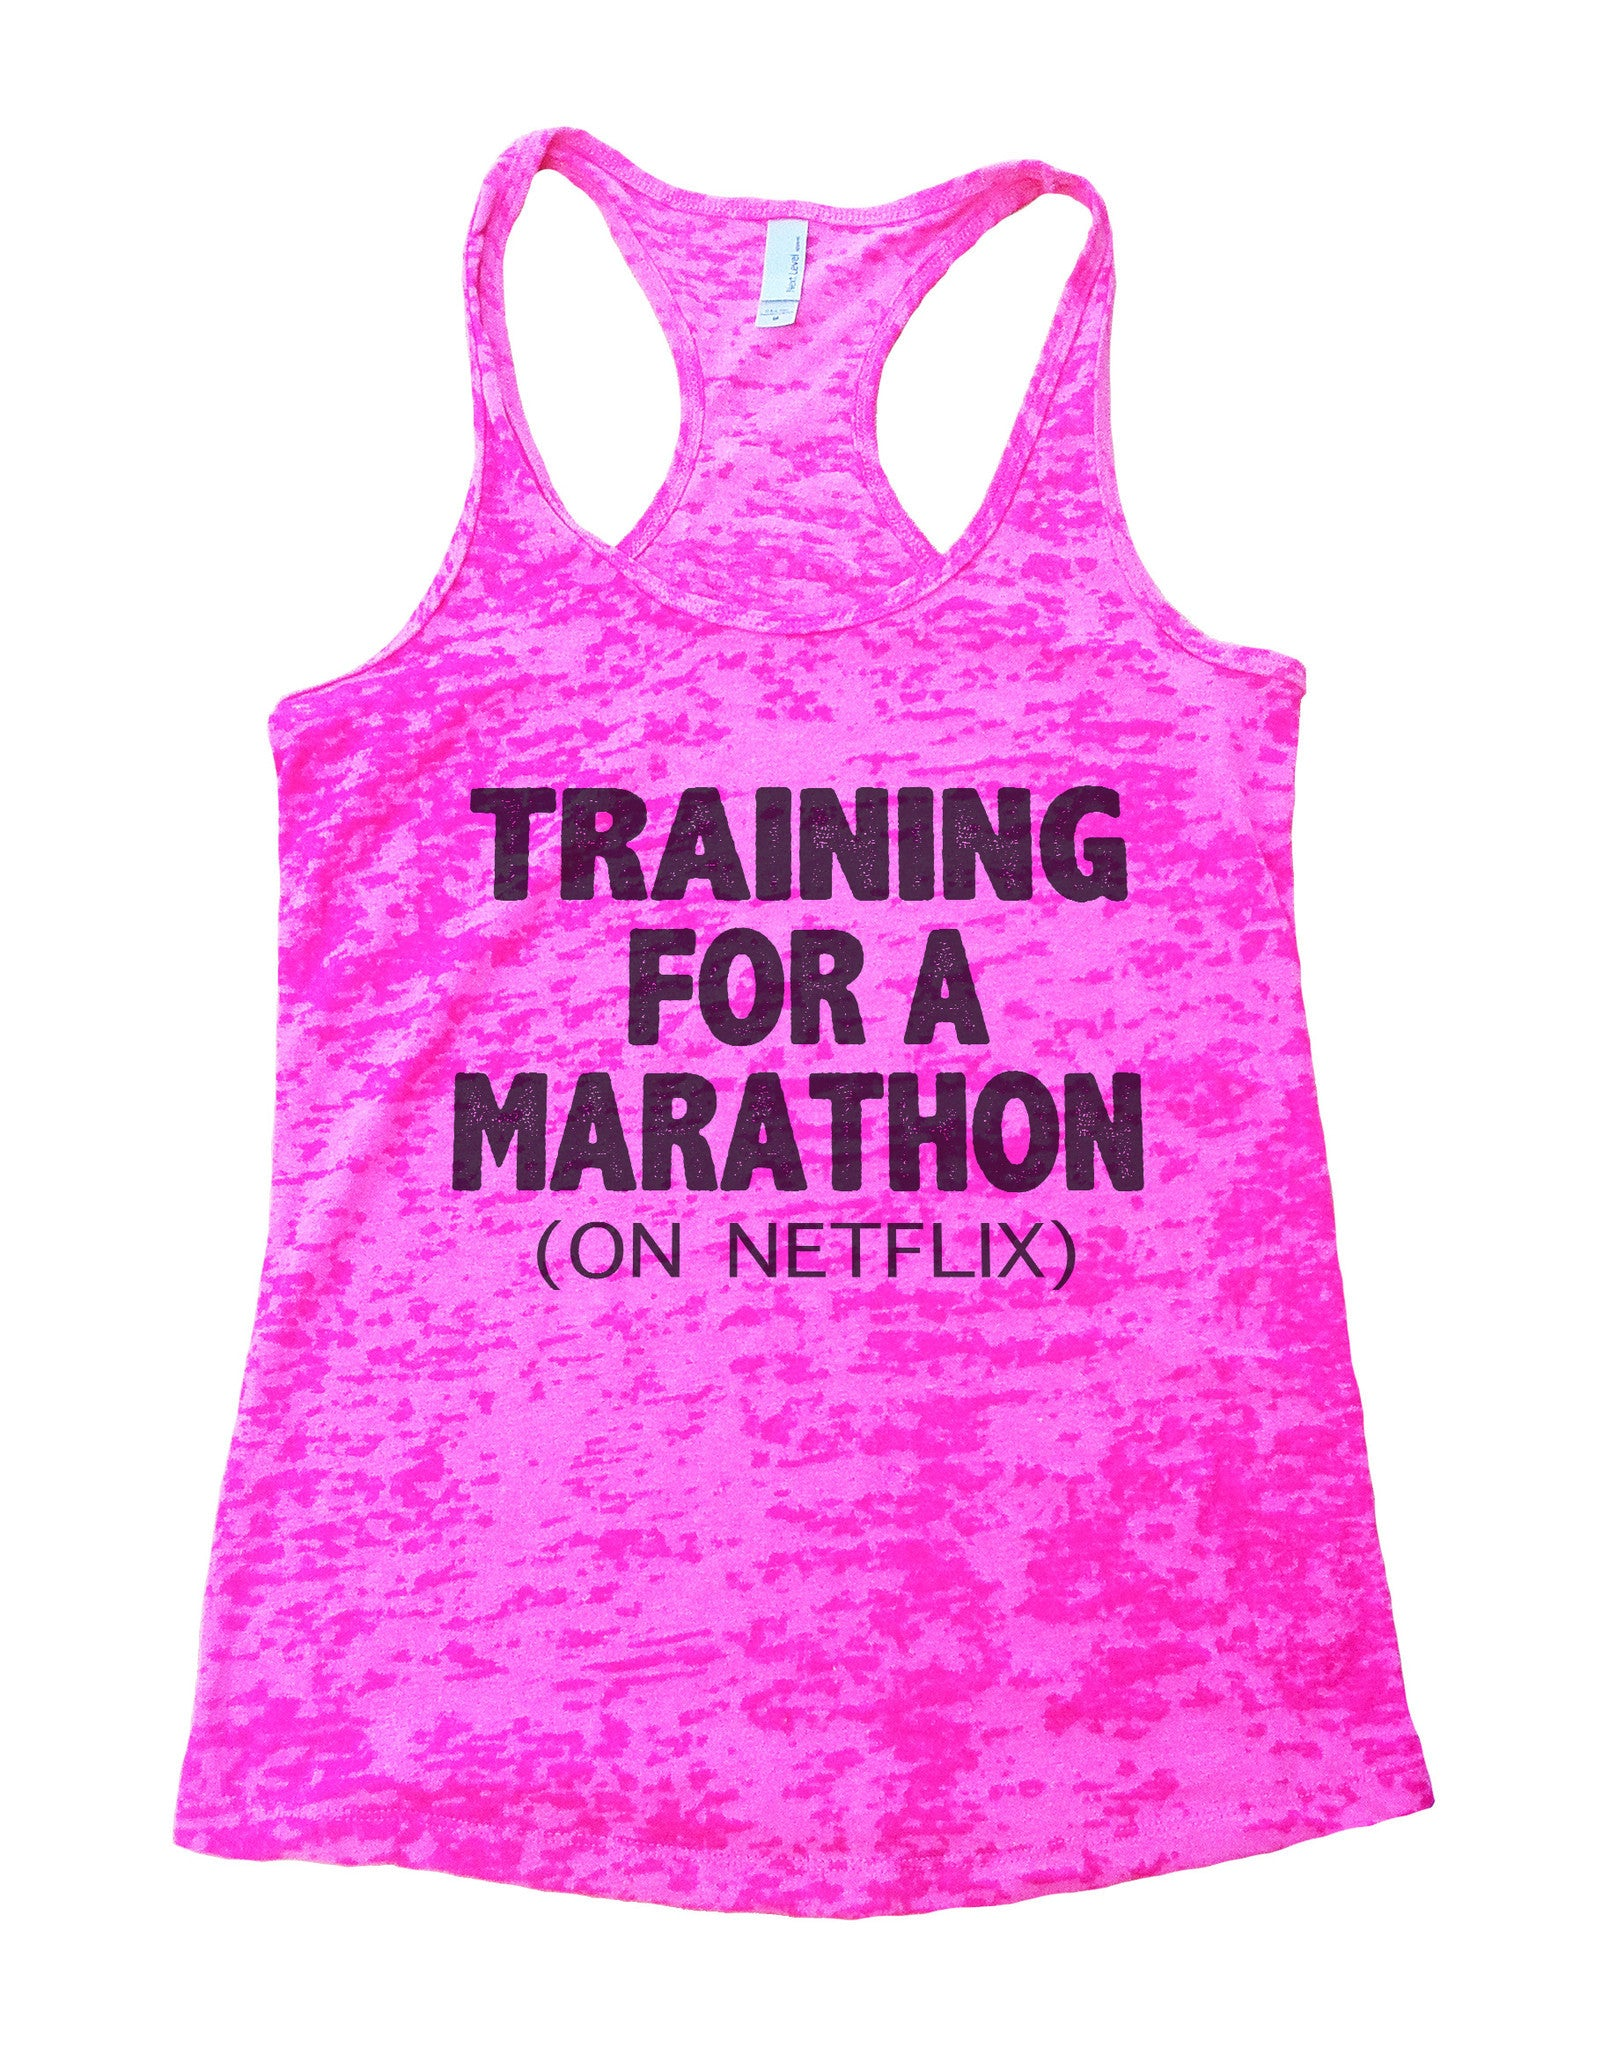 Training For A Marathon On Netflix Burnout Tank Top By BurnoutTankTops.com - 741 - Funny Shirts Tank Tops Burnouts and Triblends  - 3